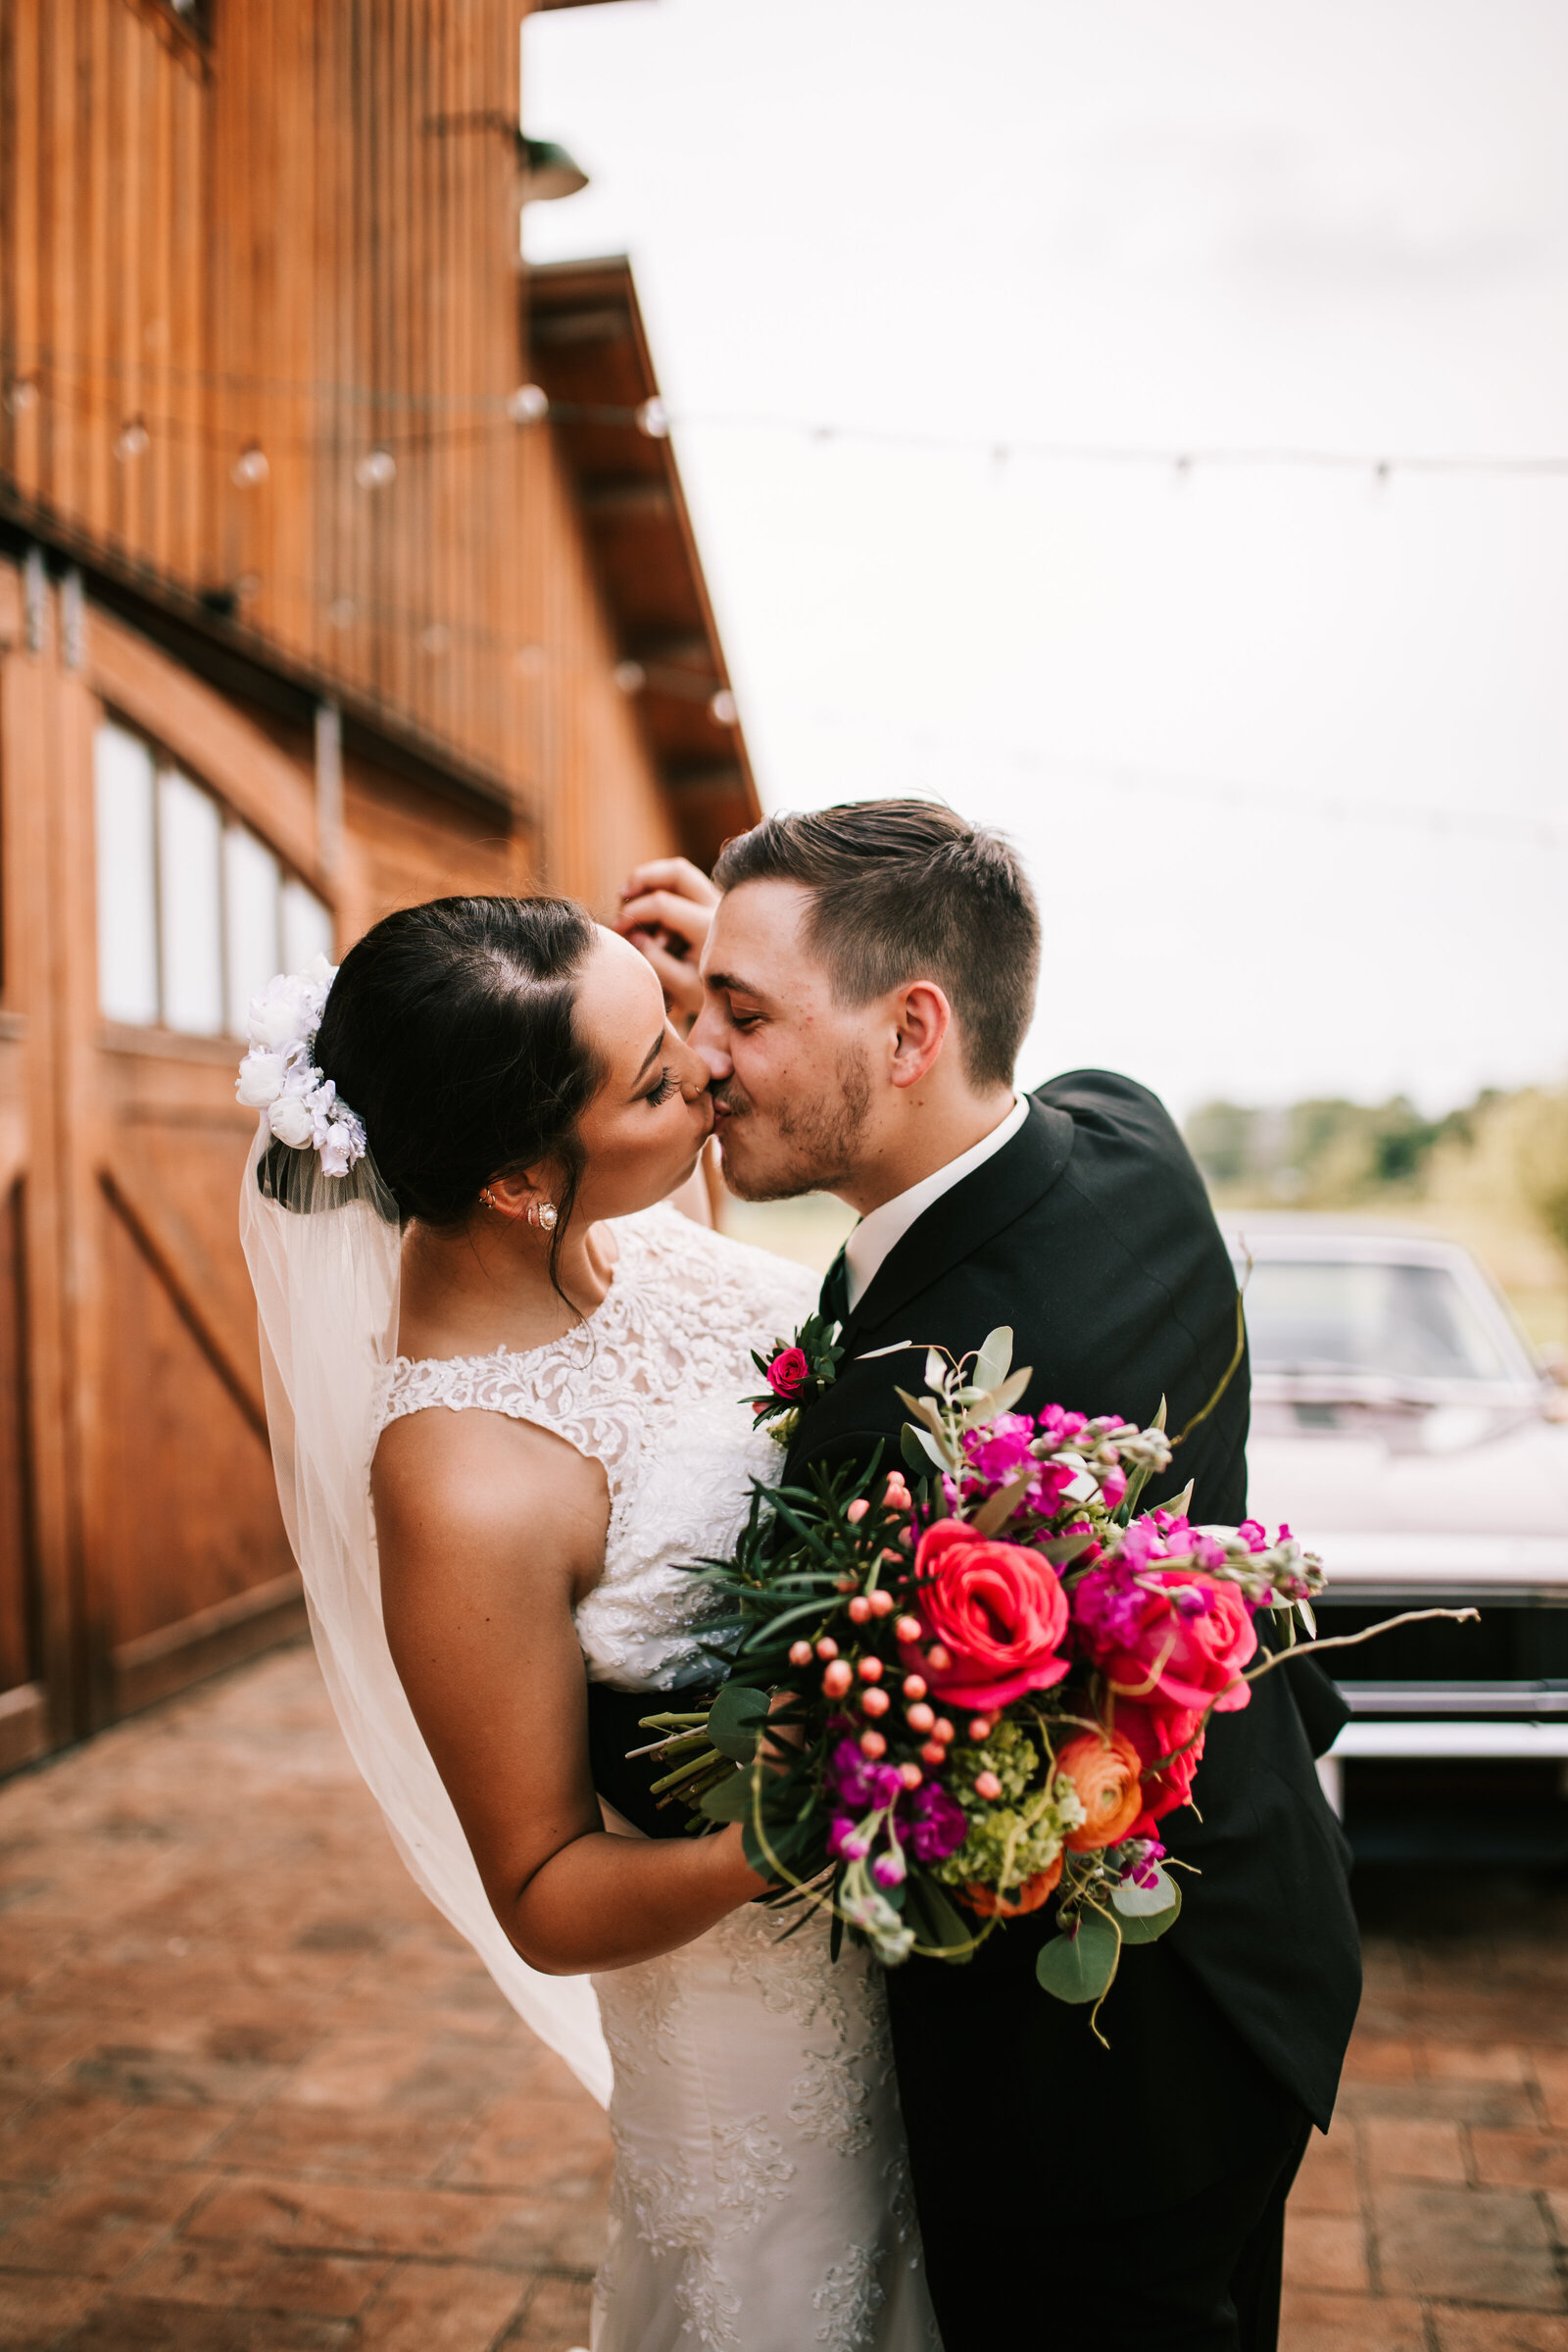 wedding with flowers, barn, and antique car in the back, kissing and holding hands